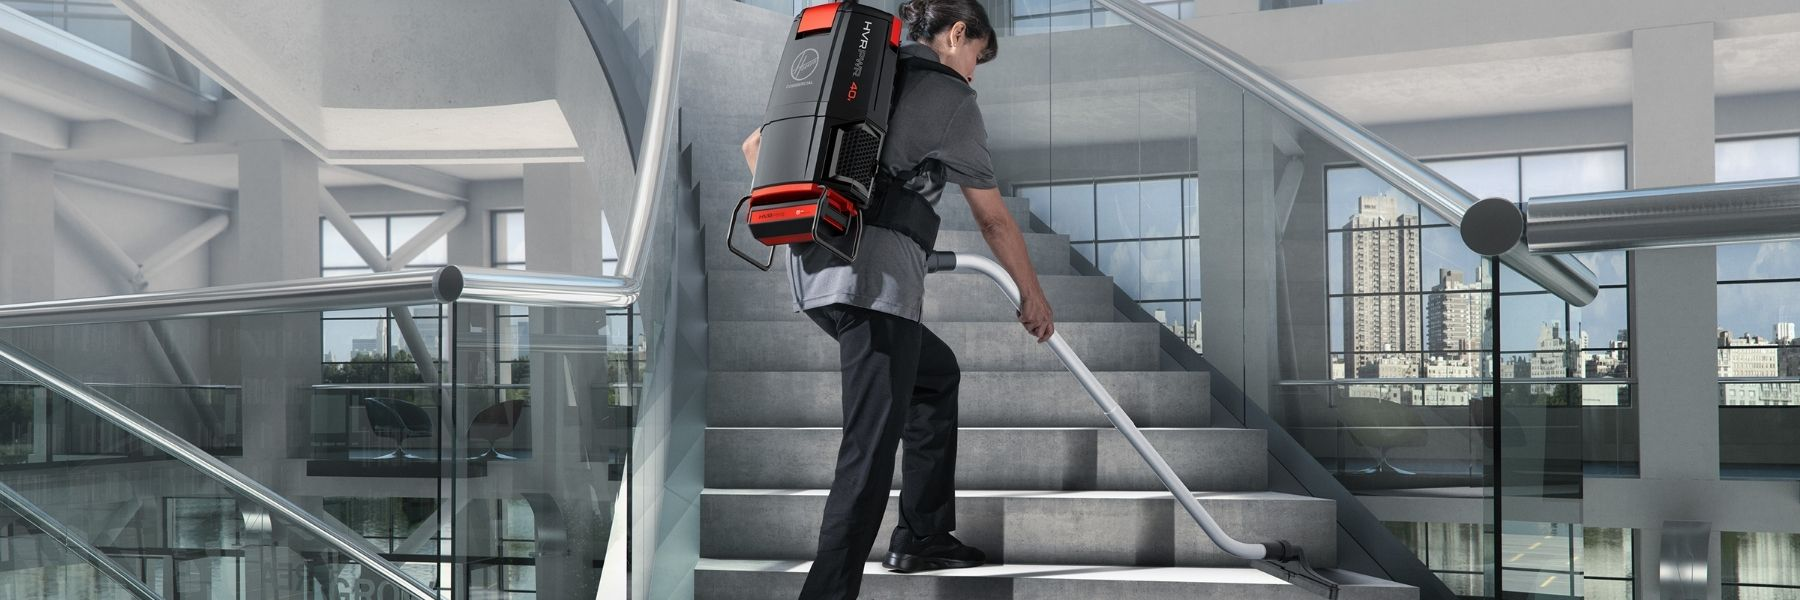 A woman using a Hoover cordless backpack vacuum to clean a stairway.